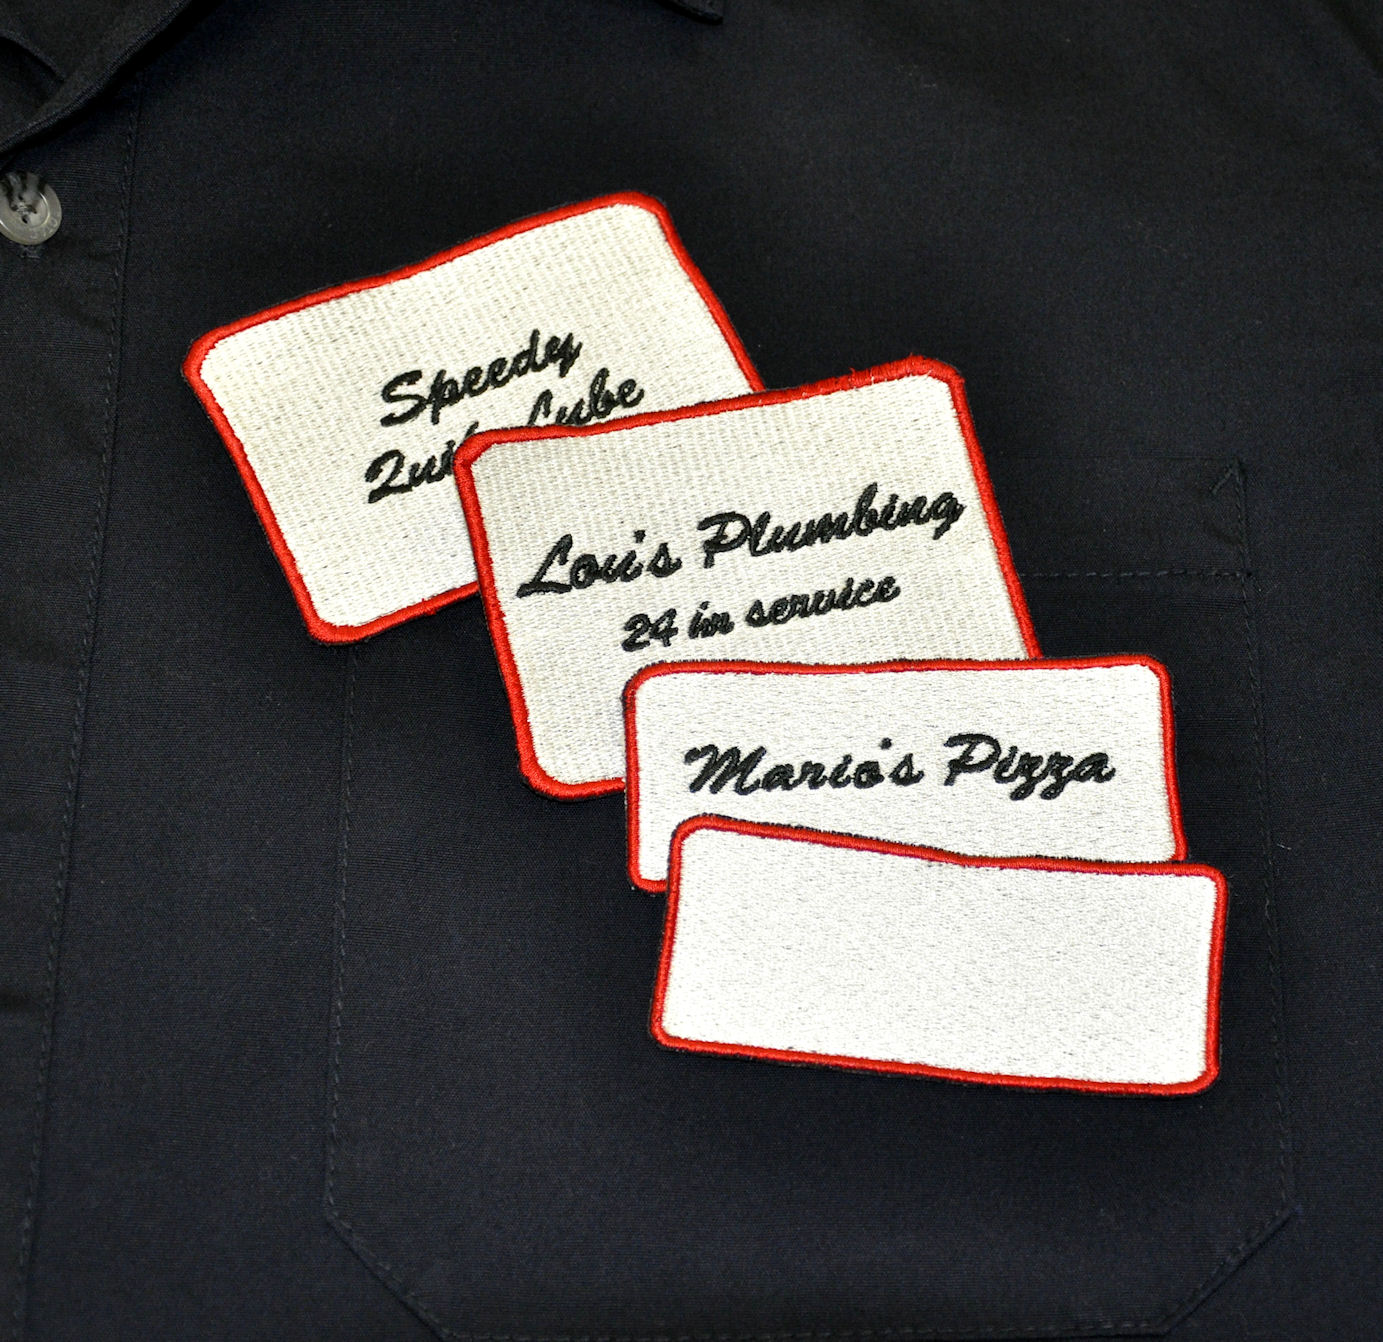 Free download mechanics shirts with name patch programs for Mechanic shirts custom name patch